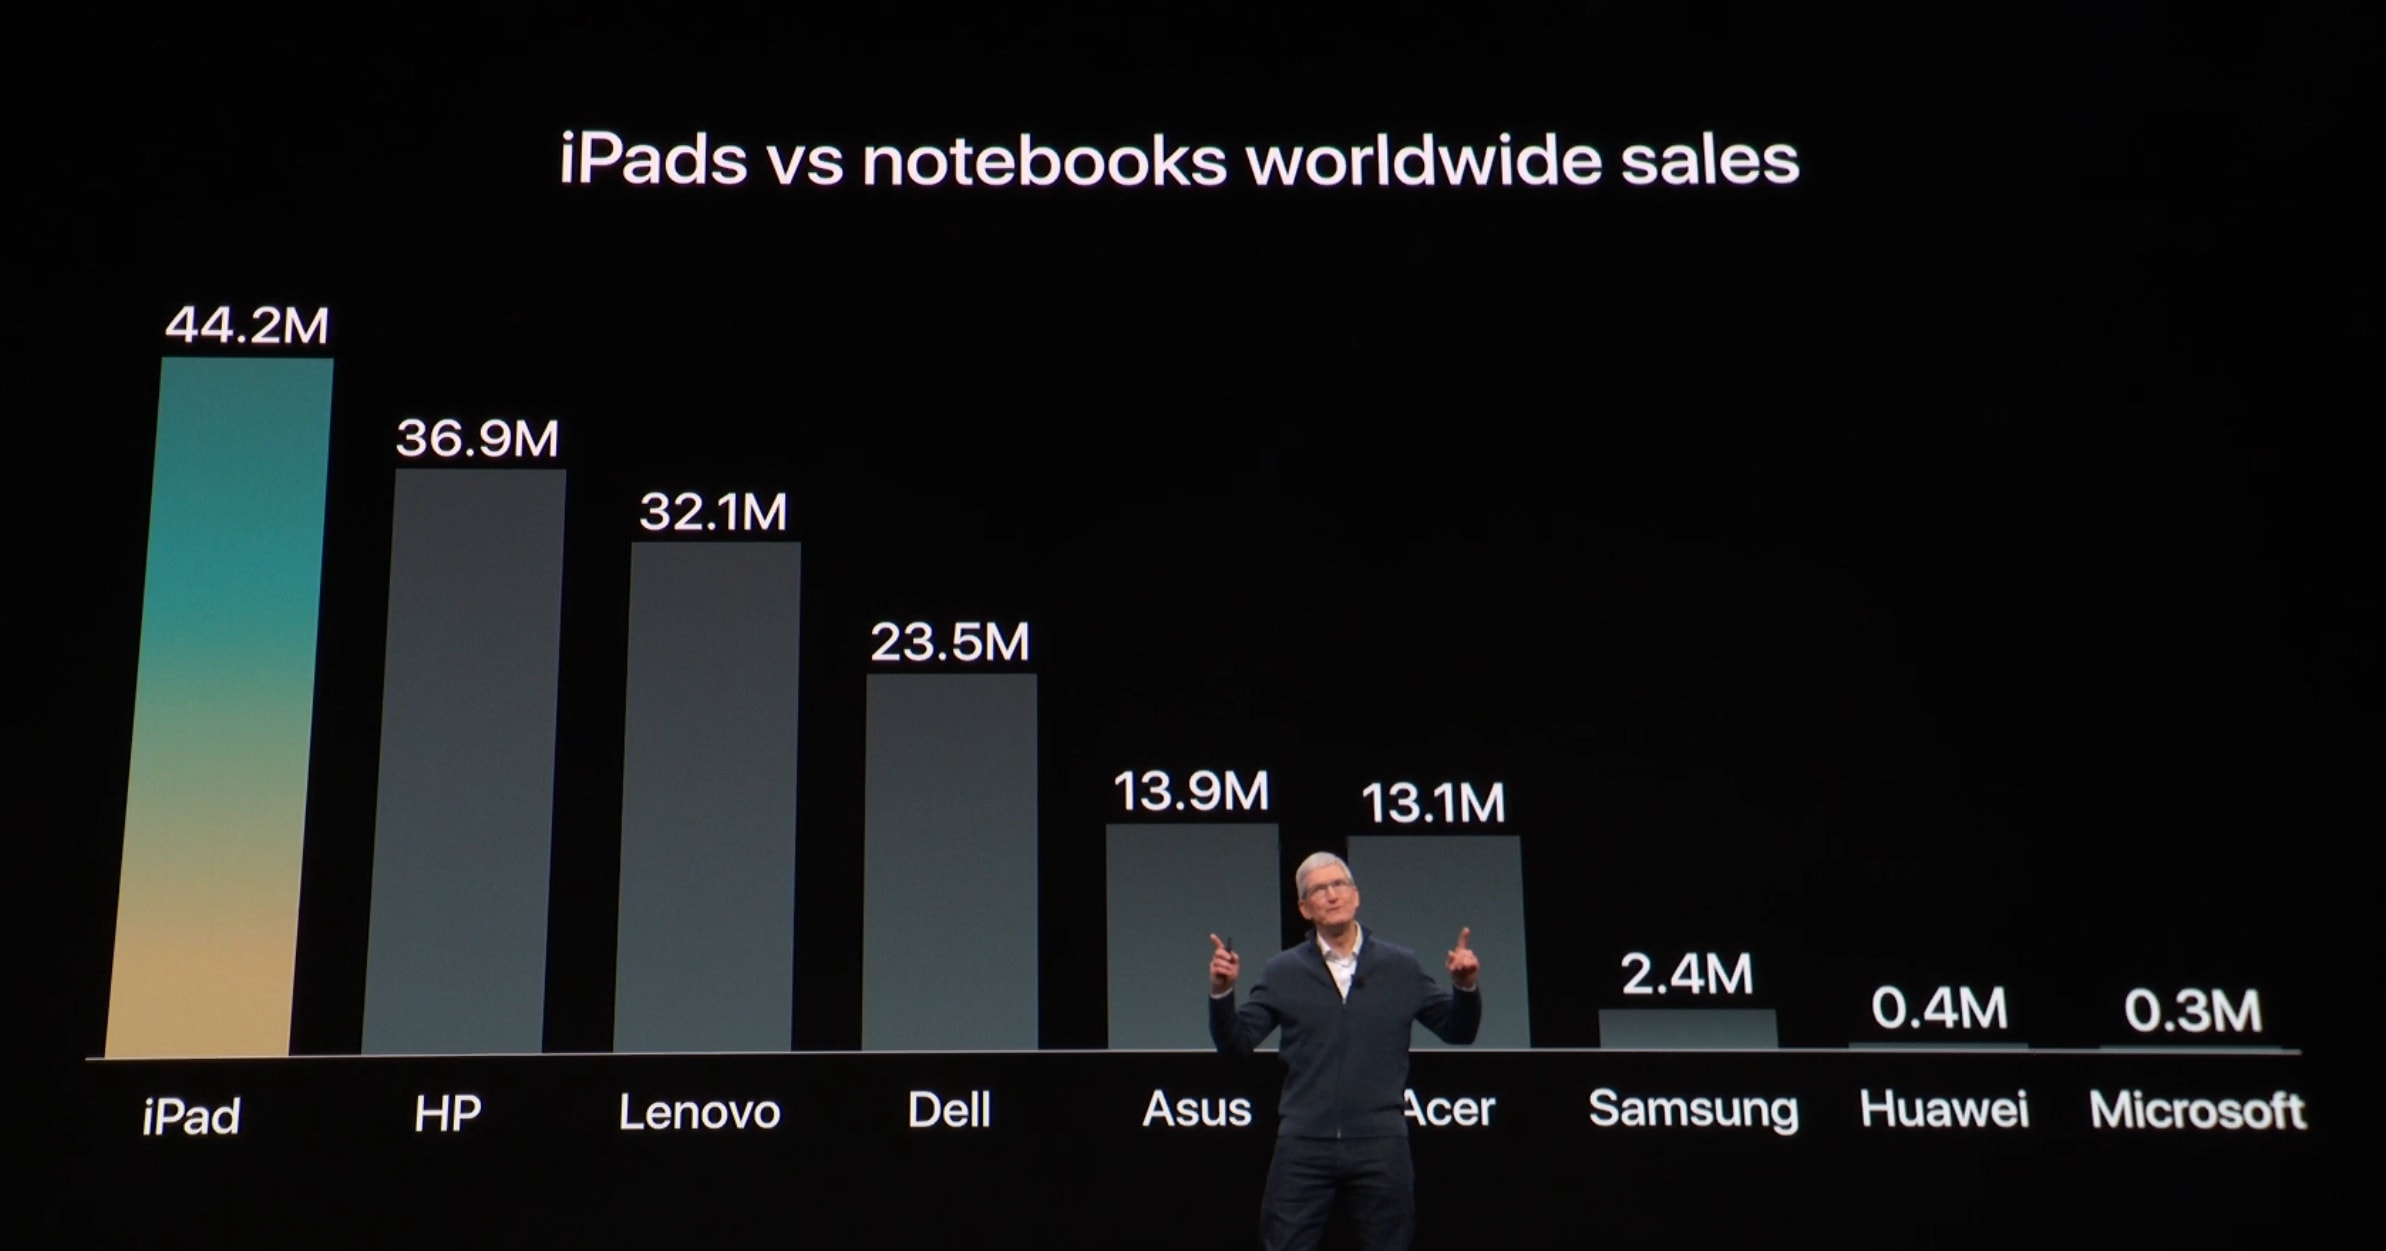 iPad outsells every notebook maker.